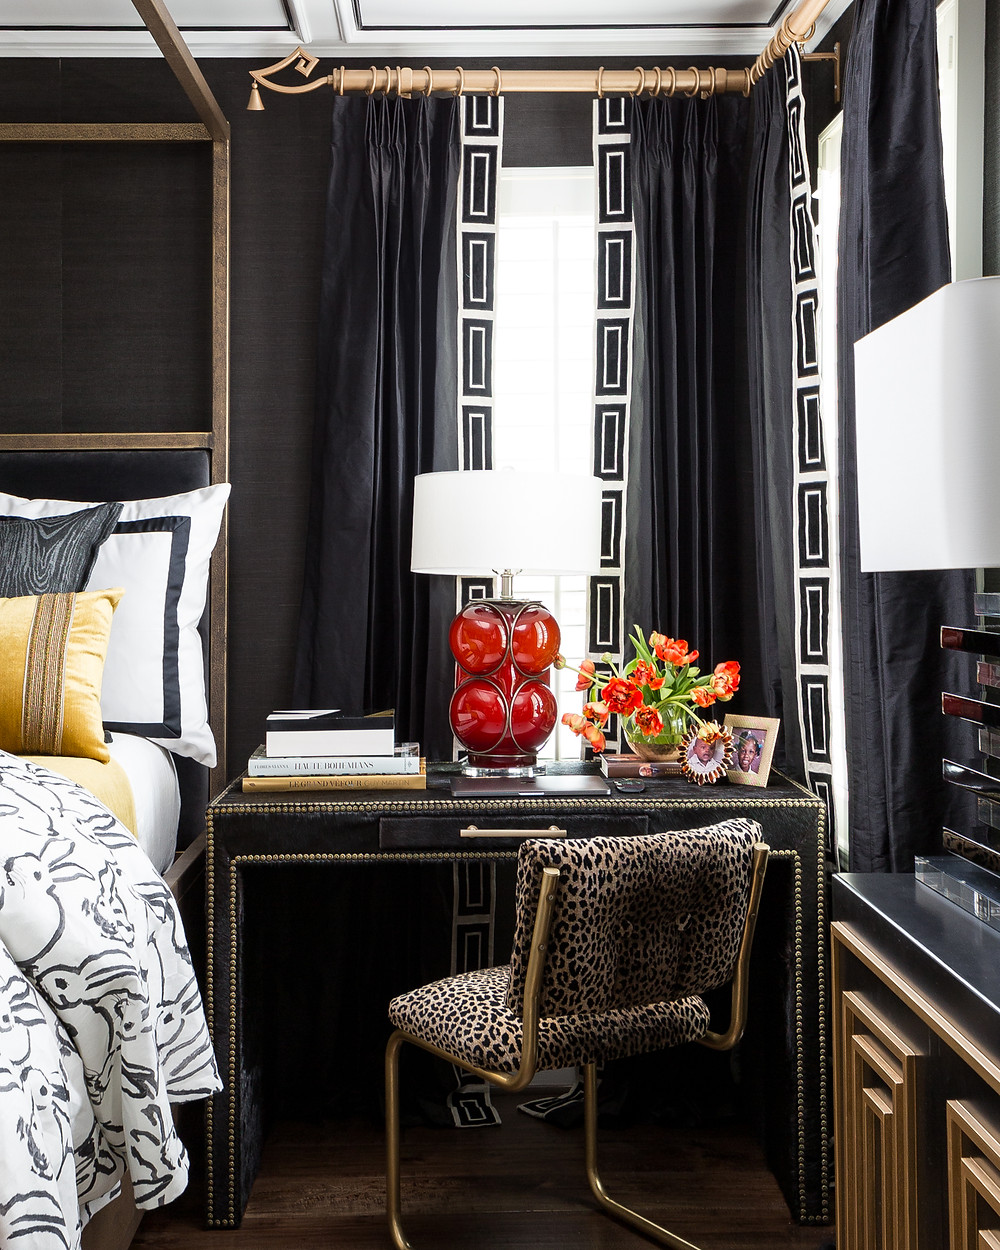 Desk Area In Master Bedroom With Black Silk Draperies Against Black Grasscloth Wallpaper. Coffered Ceilings